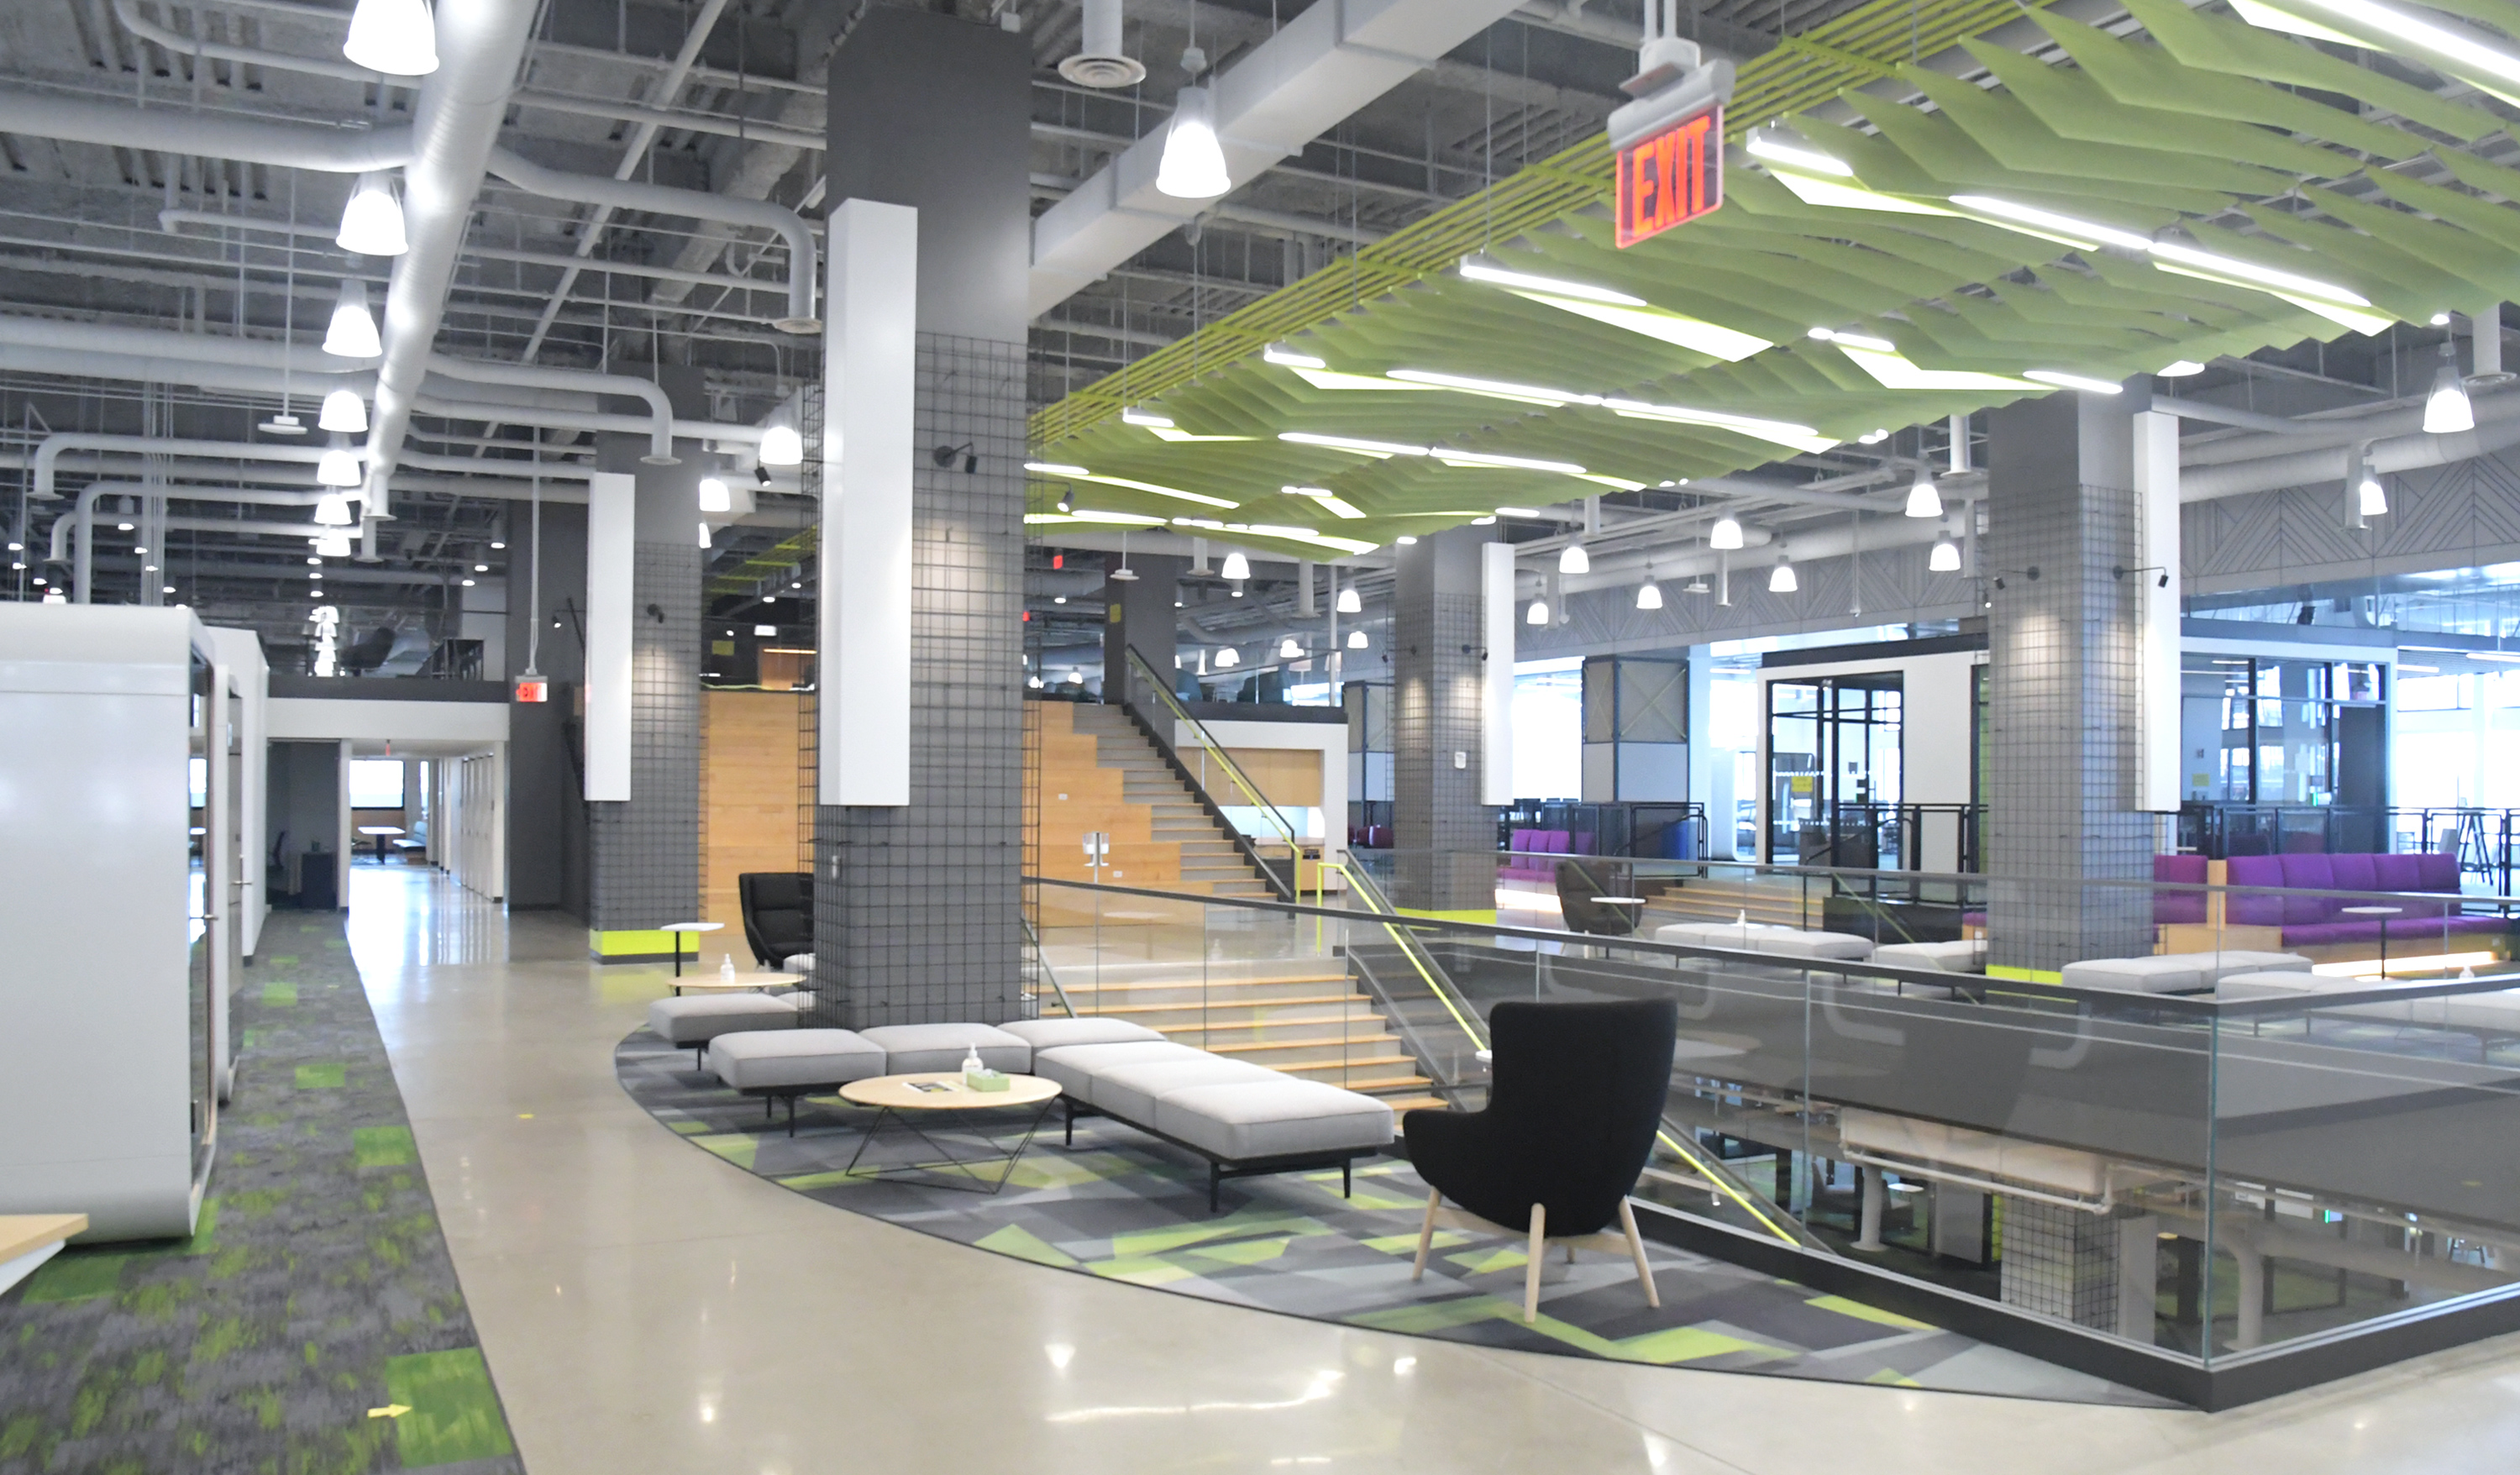 Interior M and T tech hub building photo